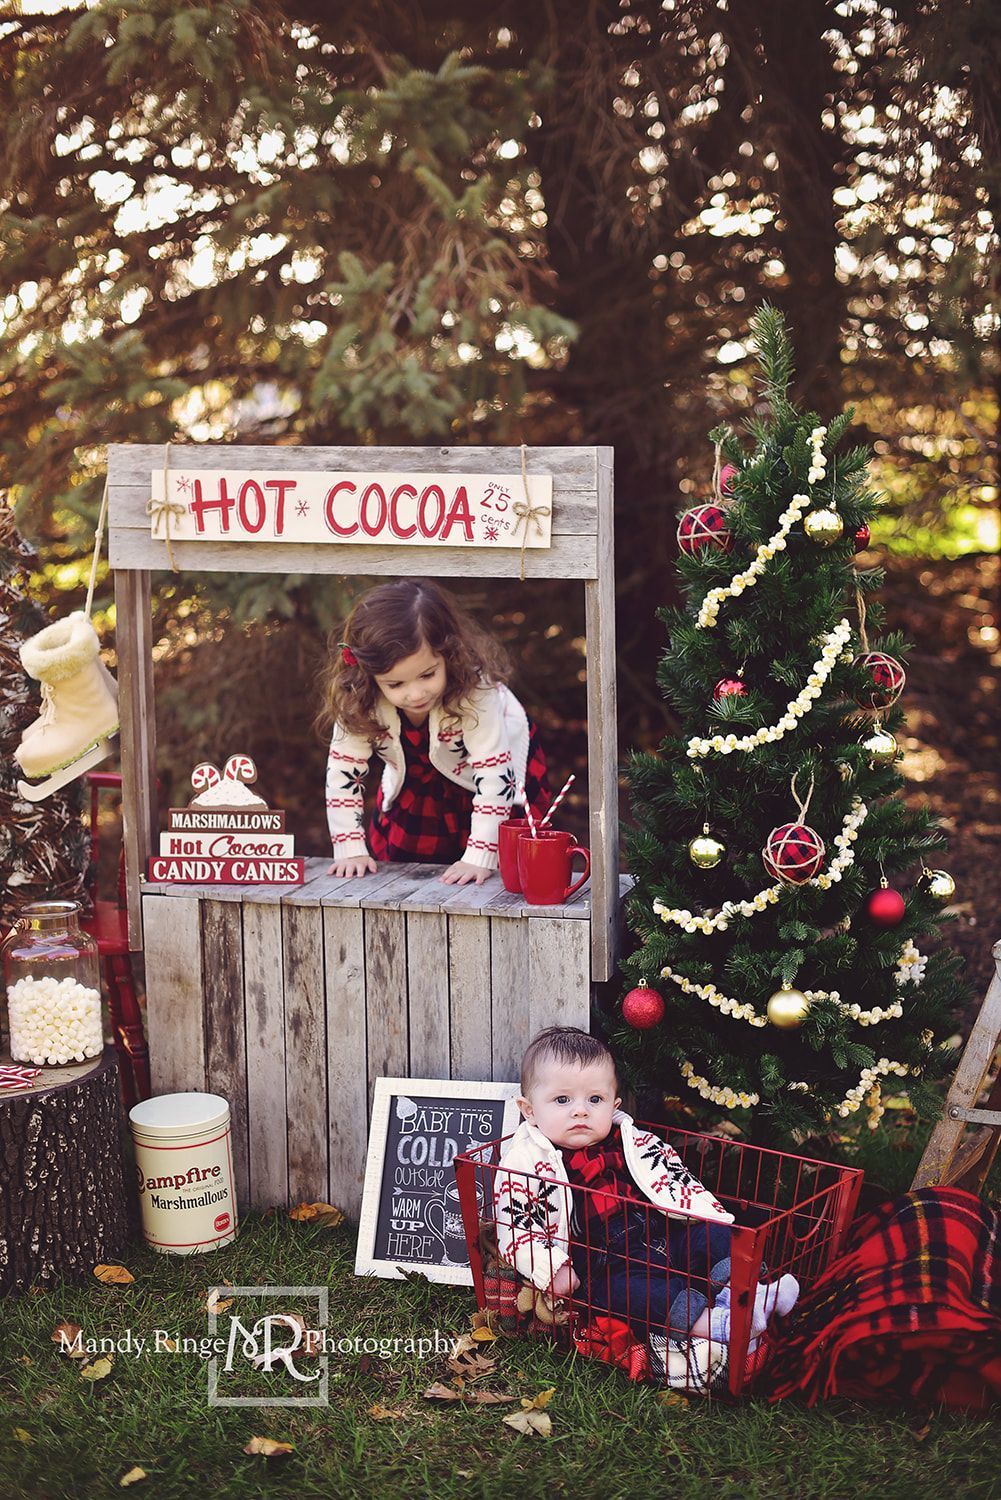 Rustic Hot Cocoa Stand Christmas Mini Session Christmas Photoshoot Kids Christmas Photo Props Christmas Photo Booth